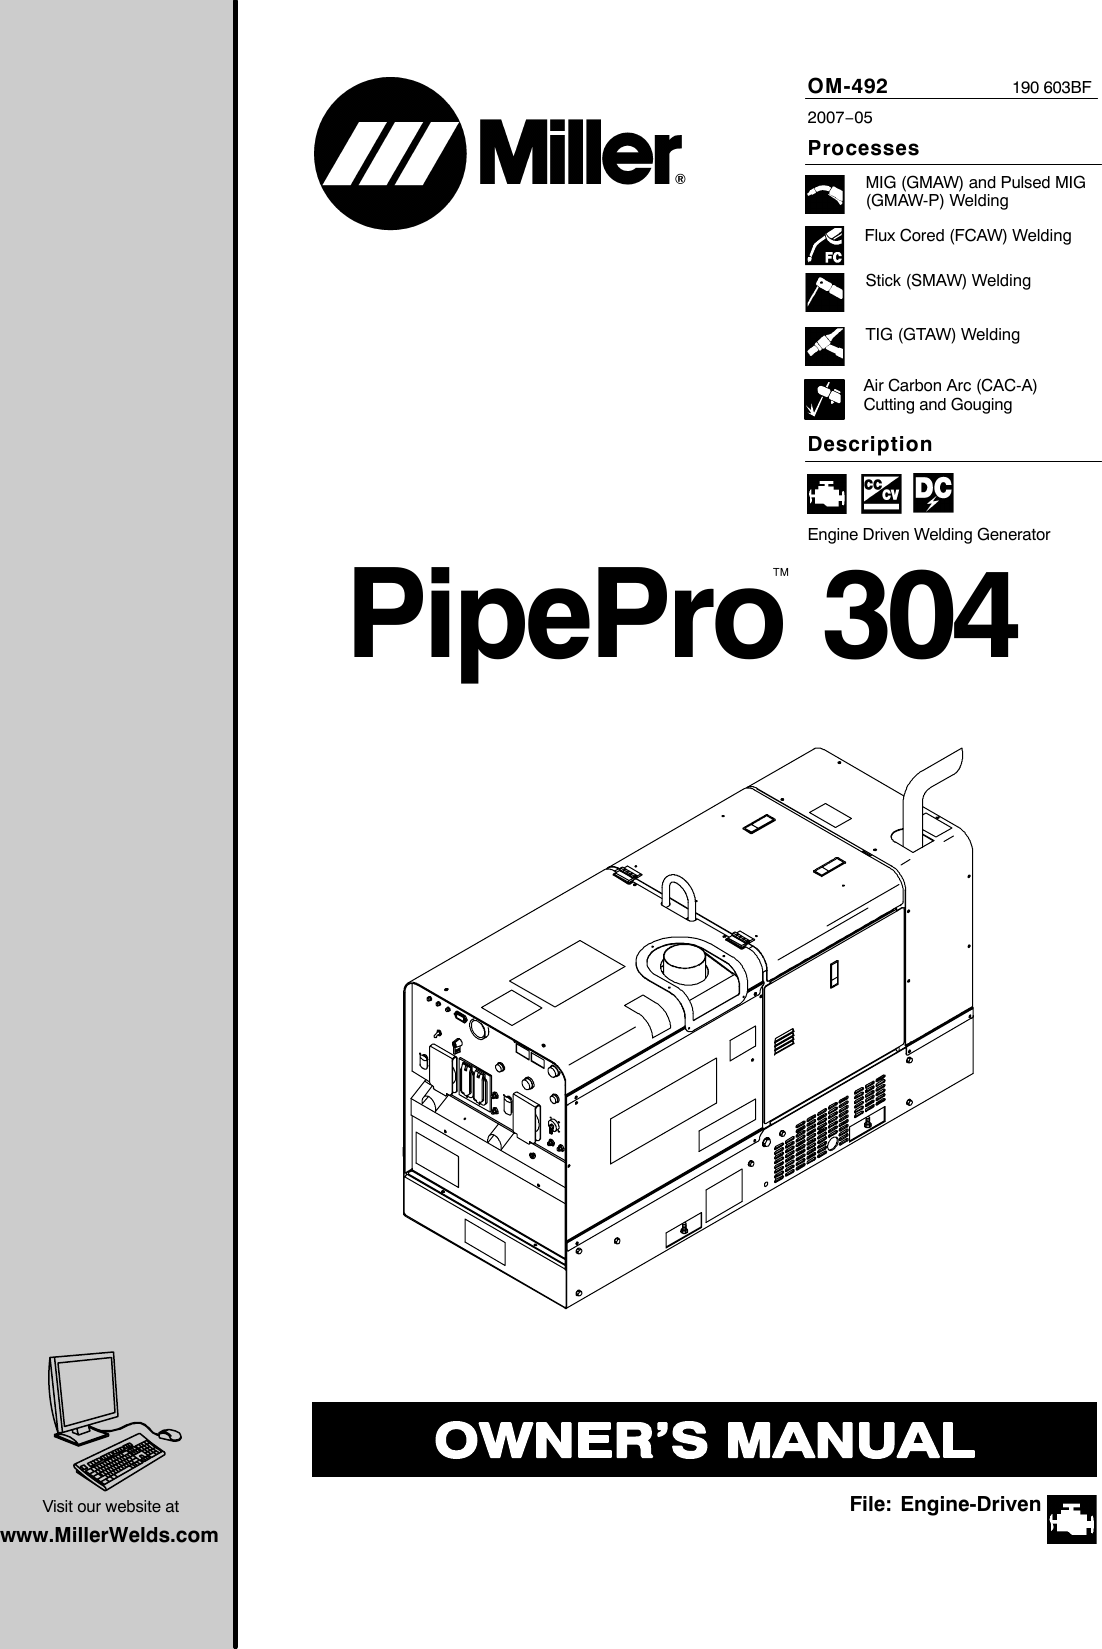 Miller Electric Pipepro 304 Users Manual O492bf Mileco3872 Wiring Schematic Diagram Fuse Box Ford F150 Pickup 4 C3 974 Connector